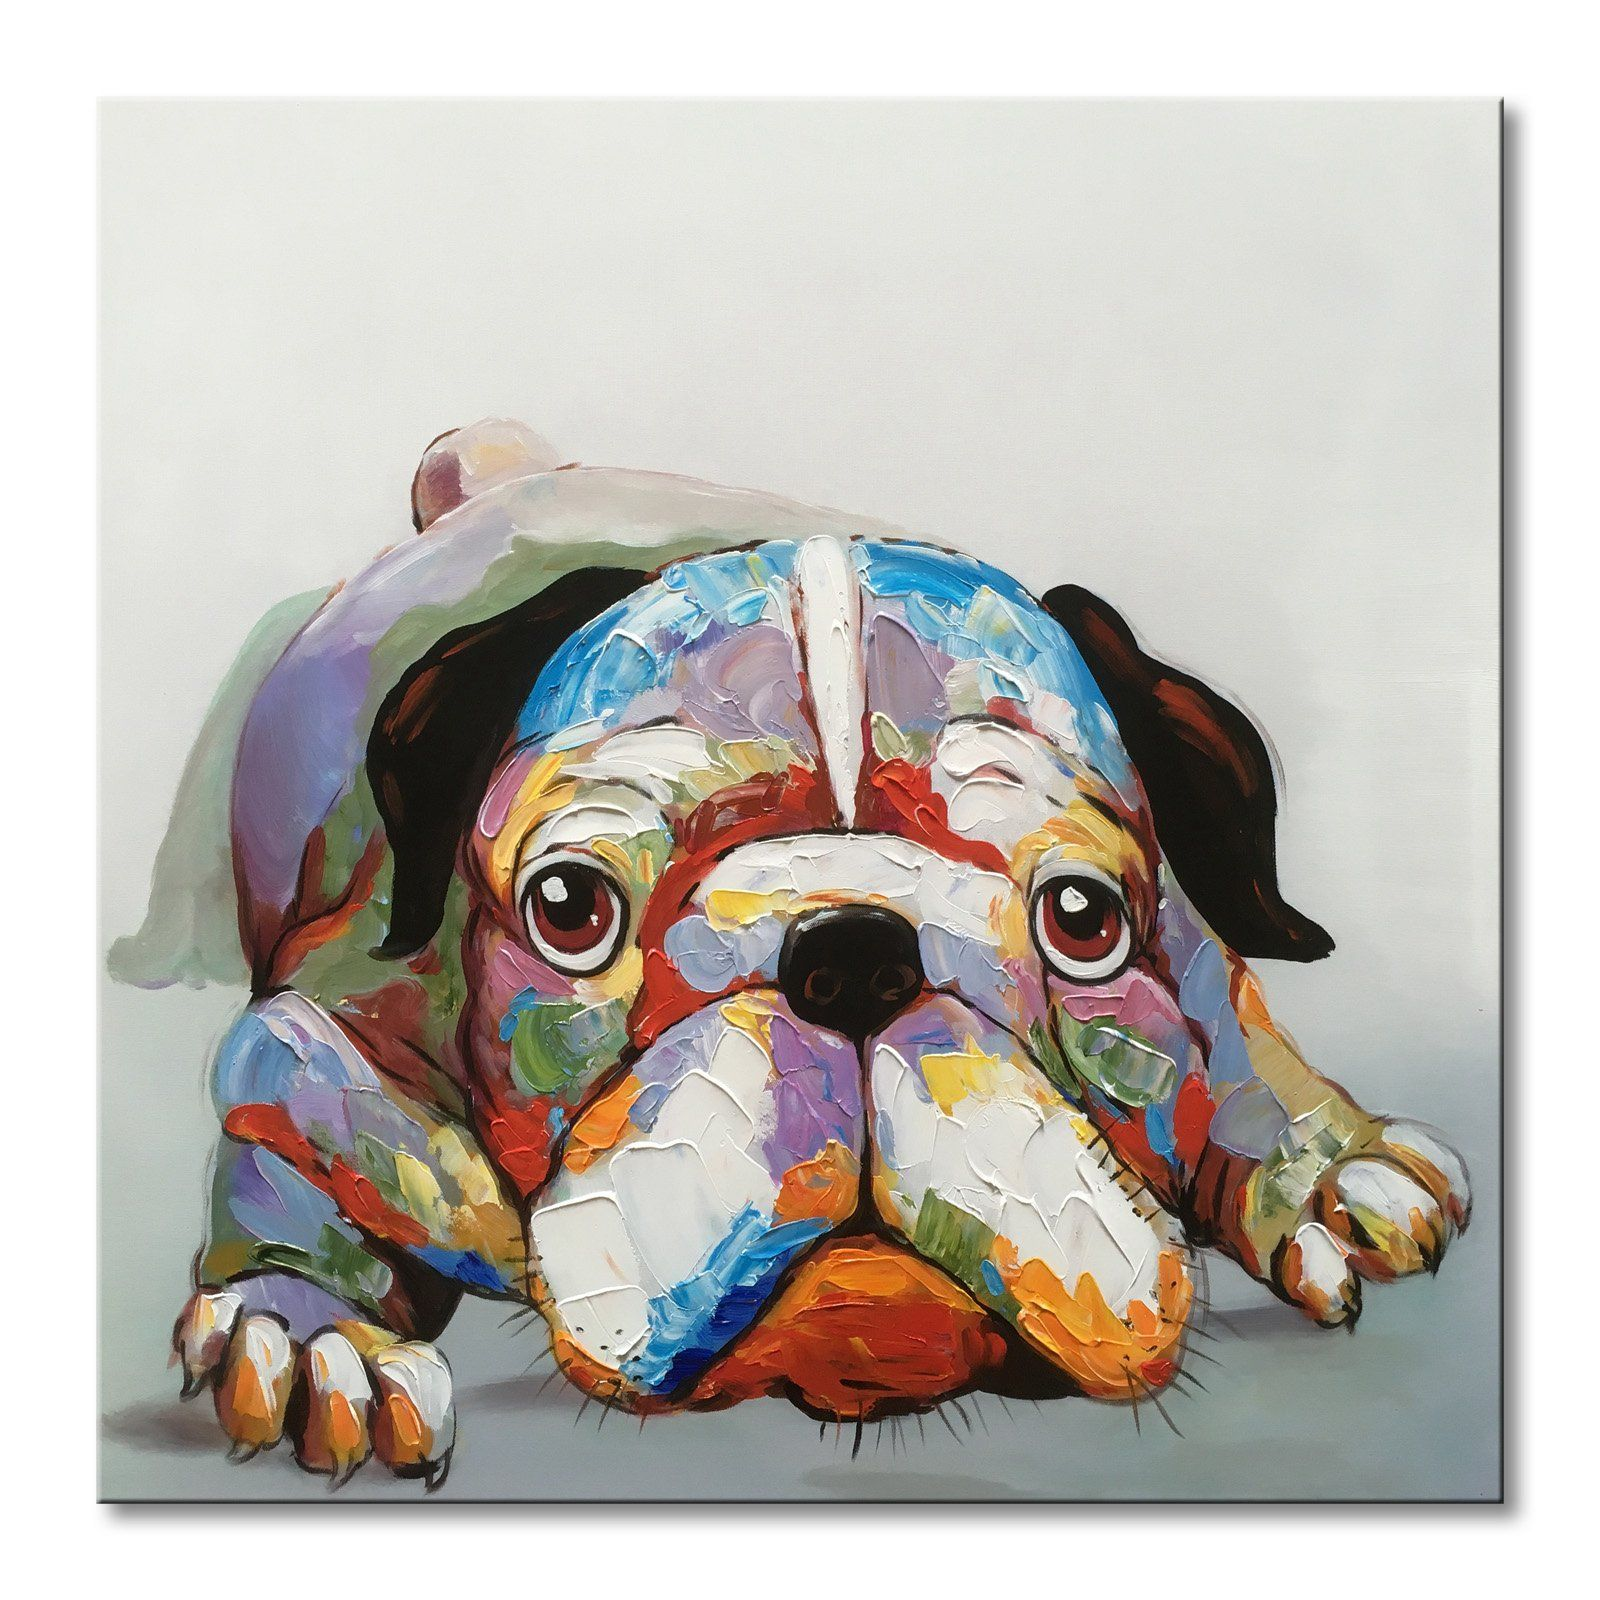 Everfun art hand painted animal oil painting on canvas of